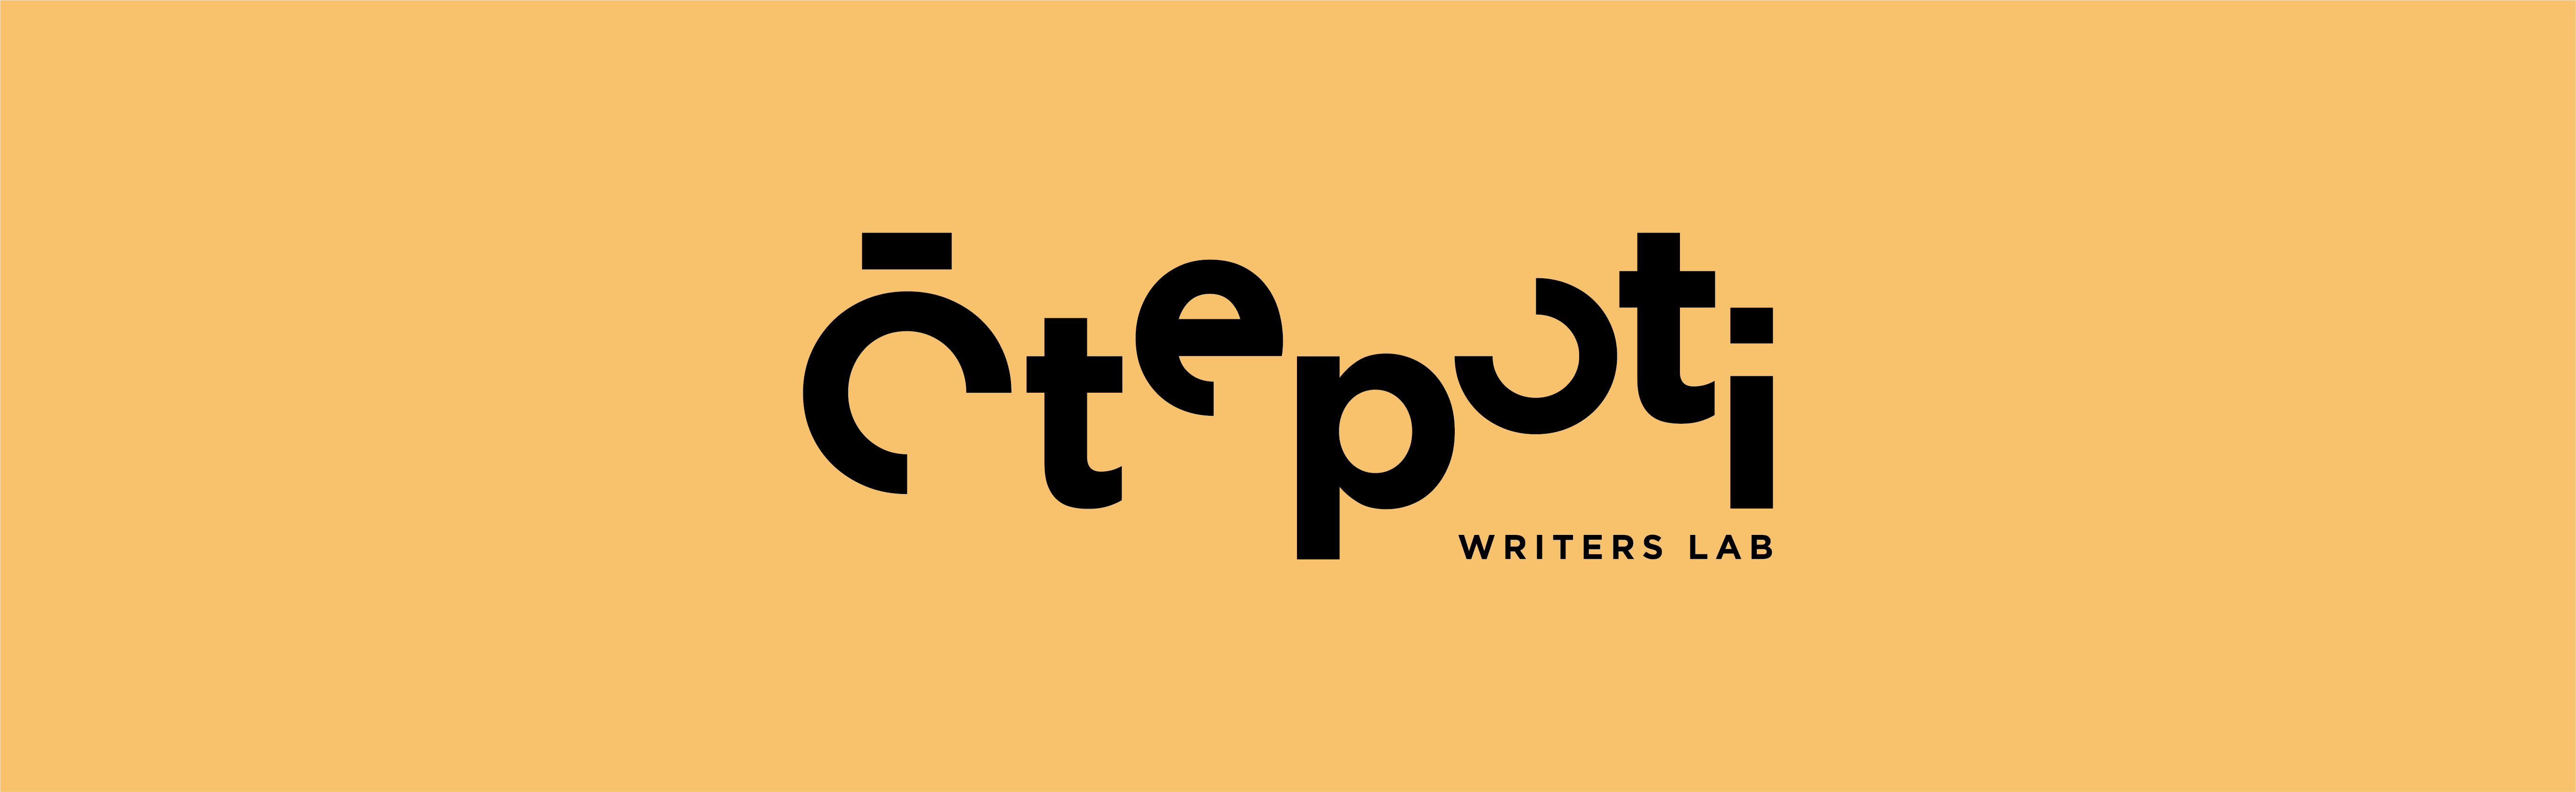 Ōtepoti Writers Lab